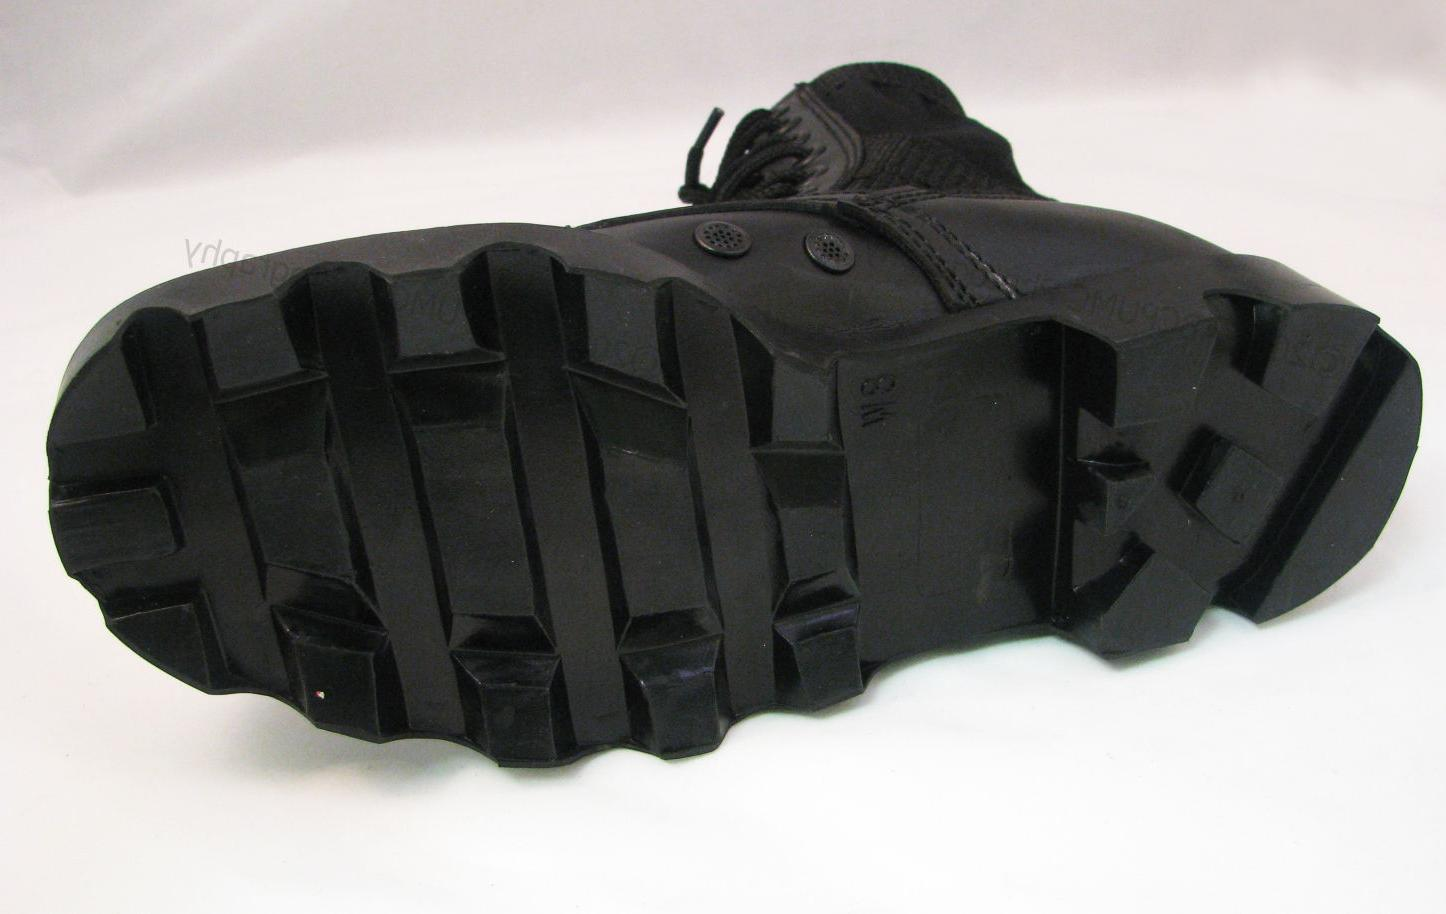 Men's Type Military Work Shoes,